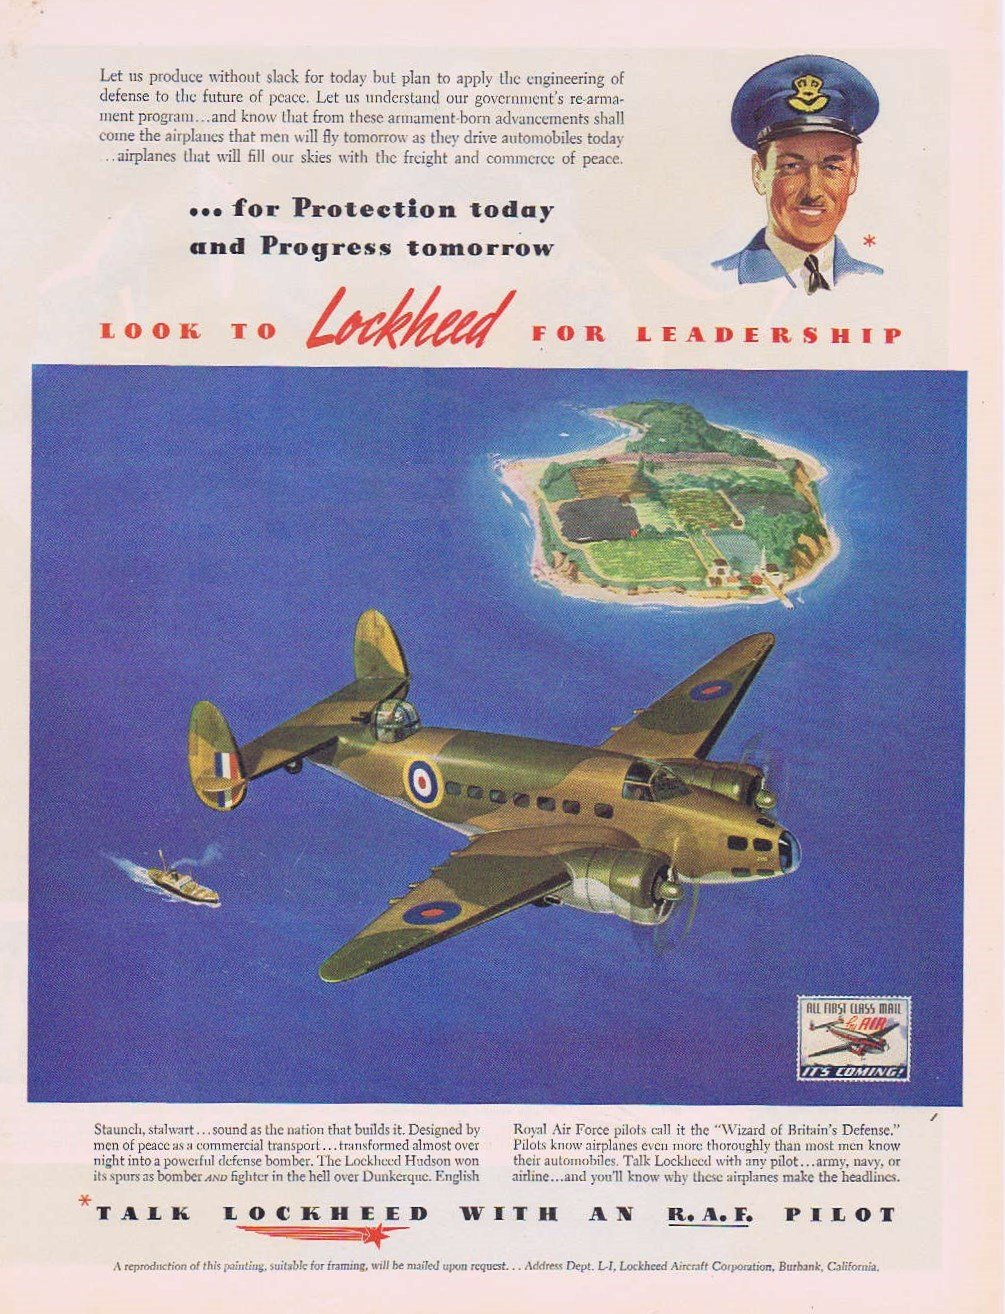 1941 Lockheed Hudson Bomber Military Plane Original Vintage Advertisement